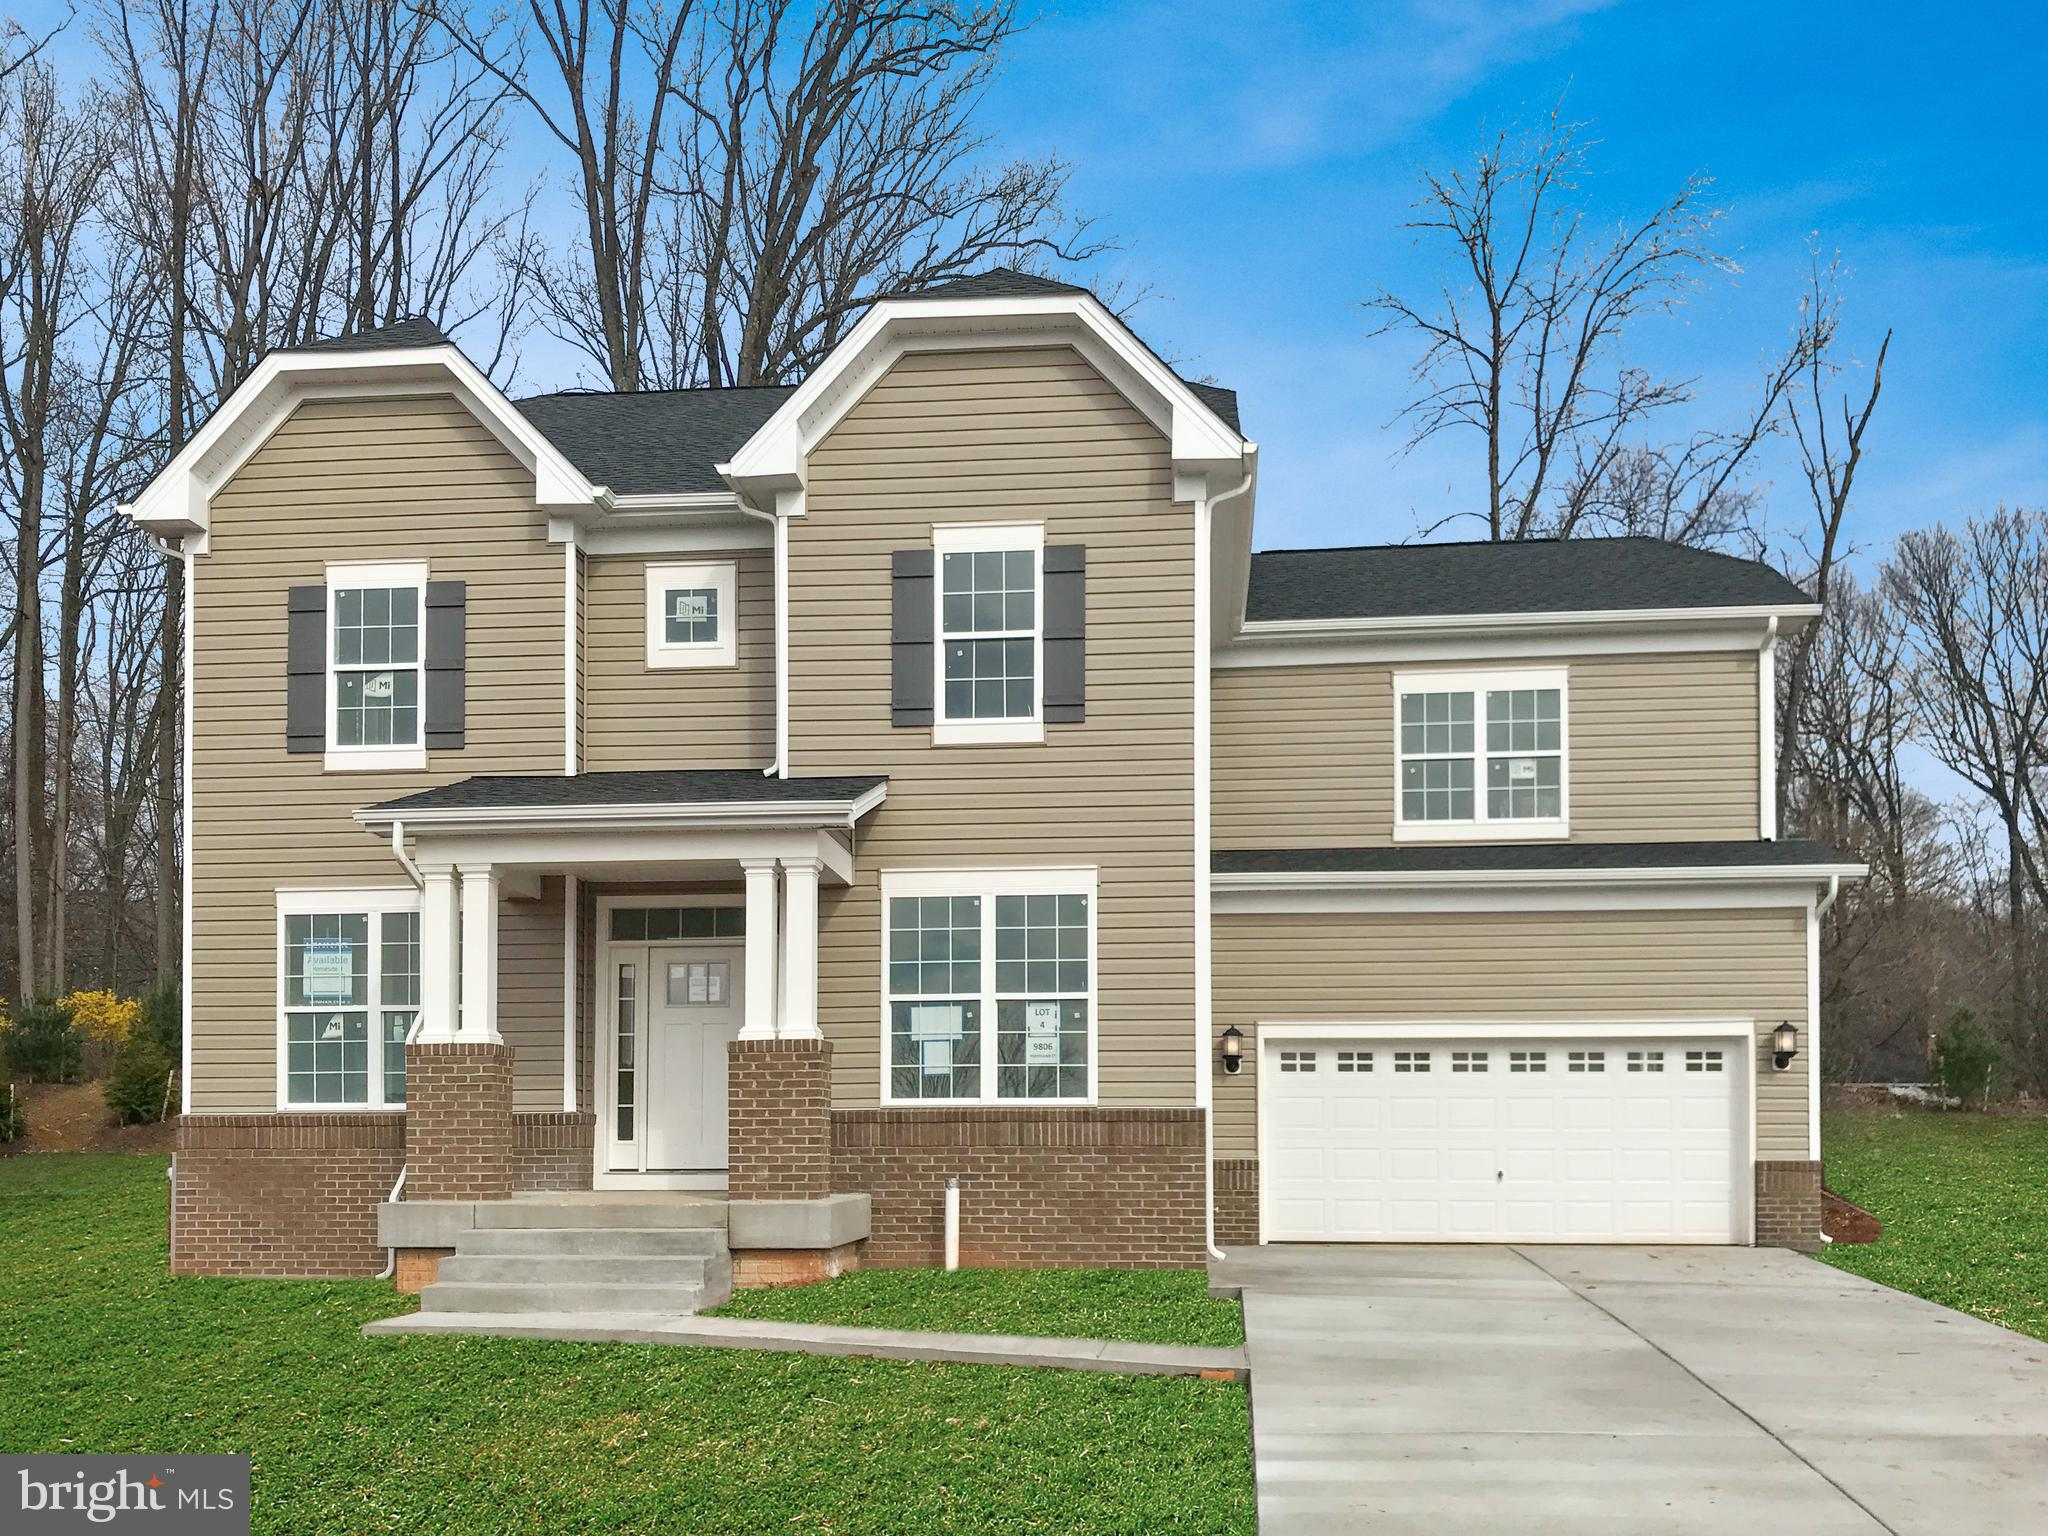 9806 PERRYLAND, PERRY HALL, MD 21128